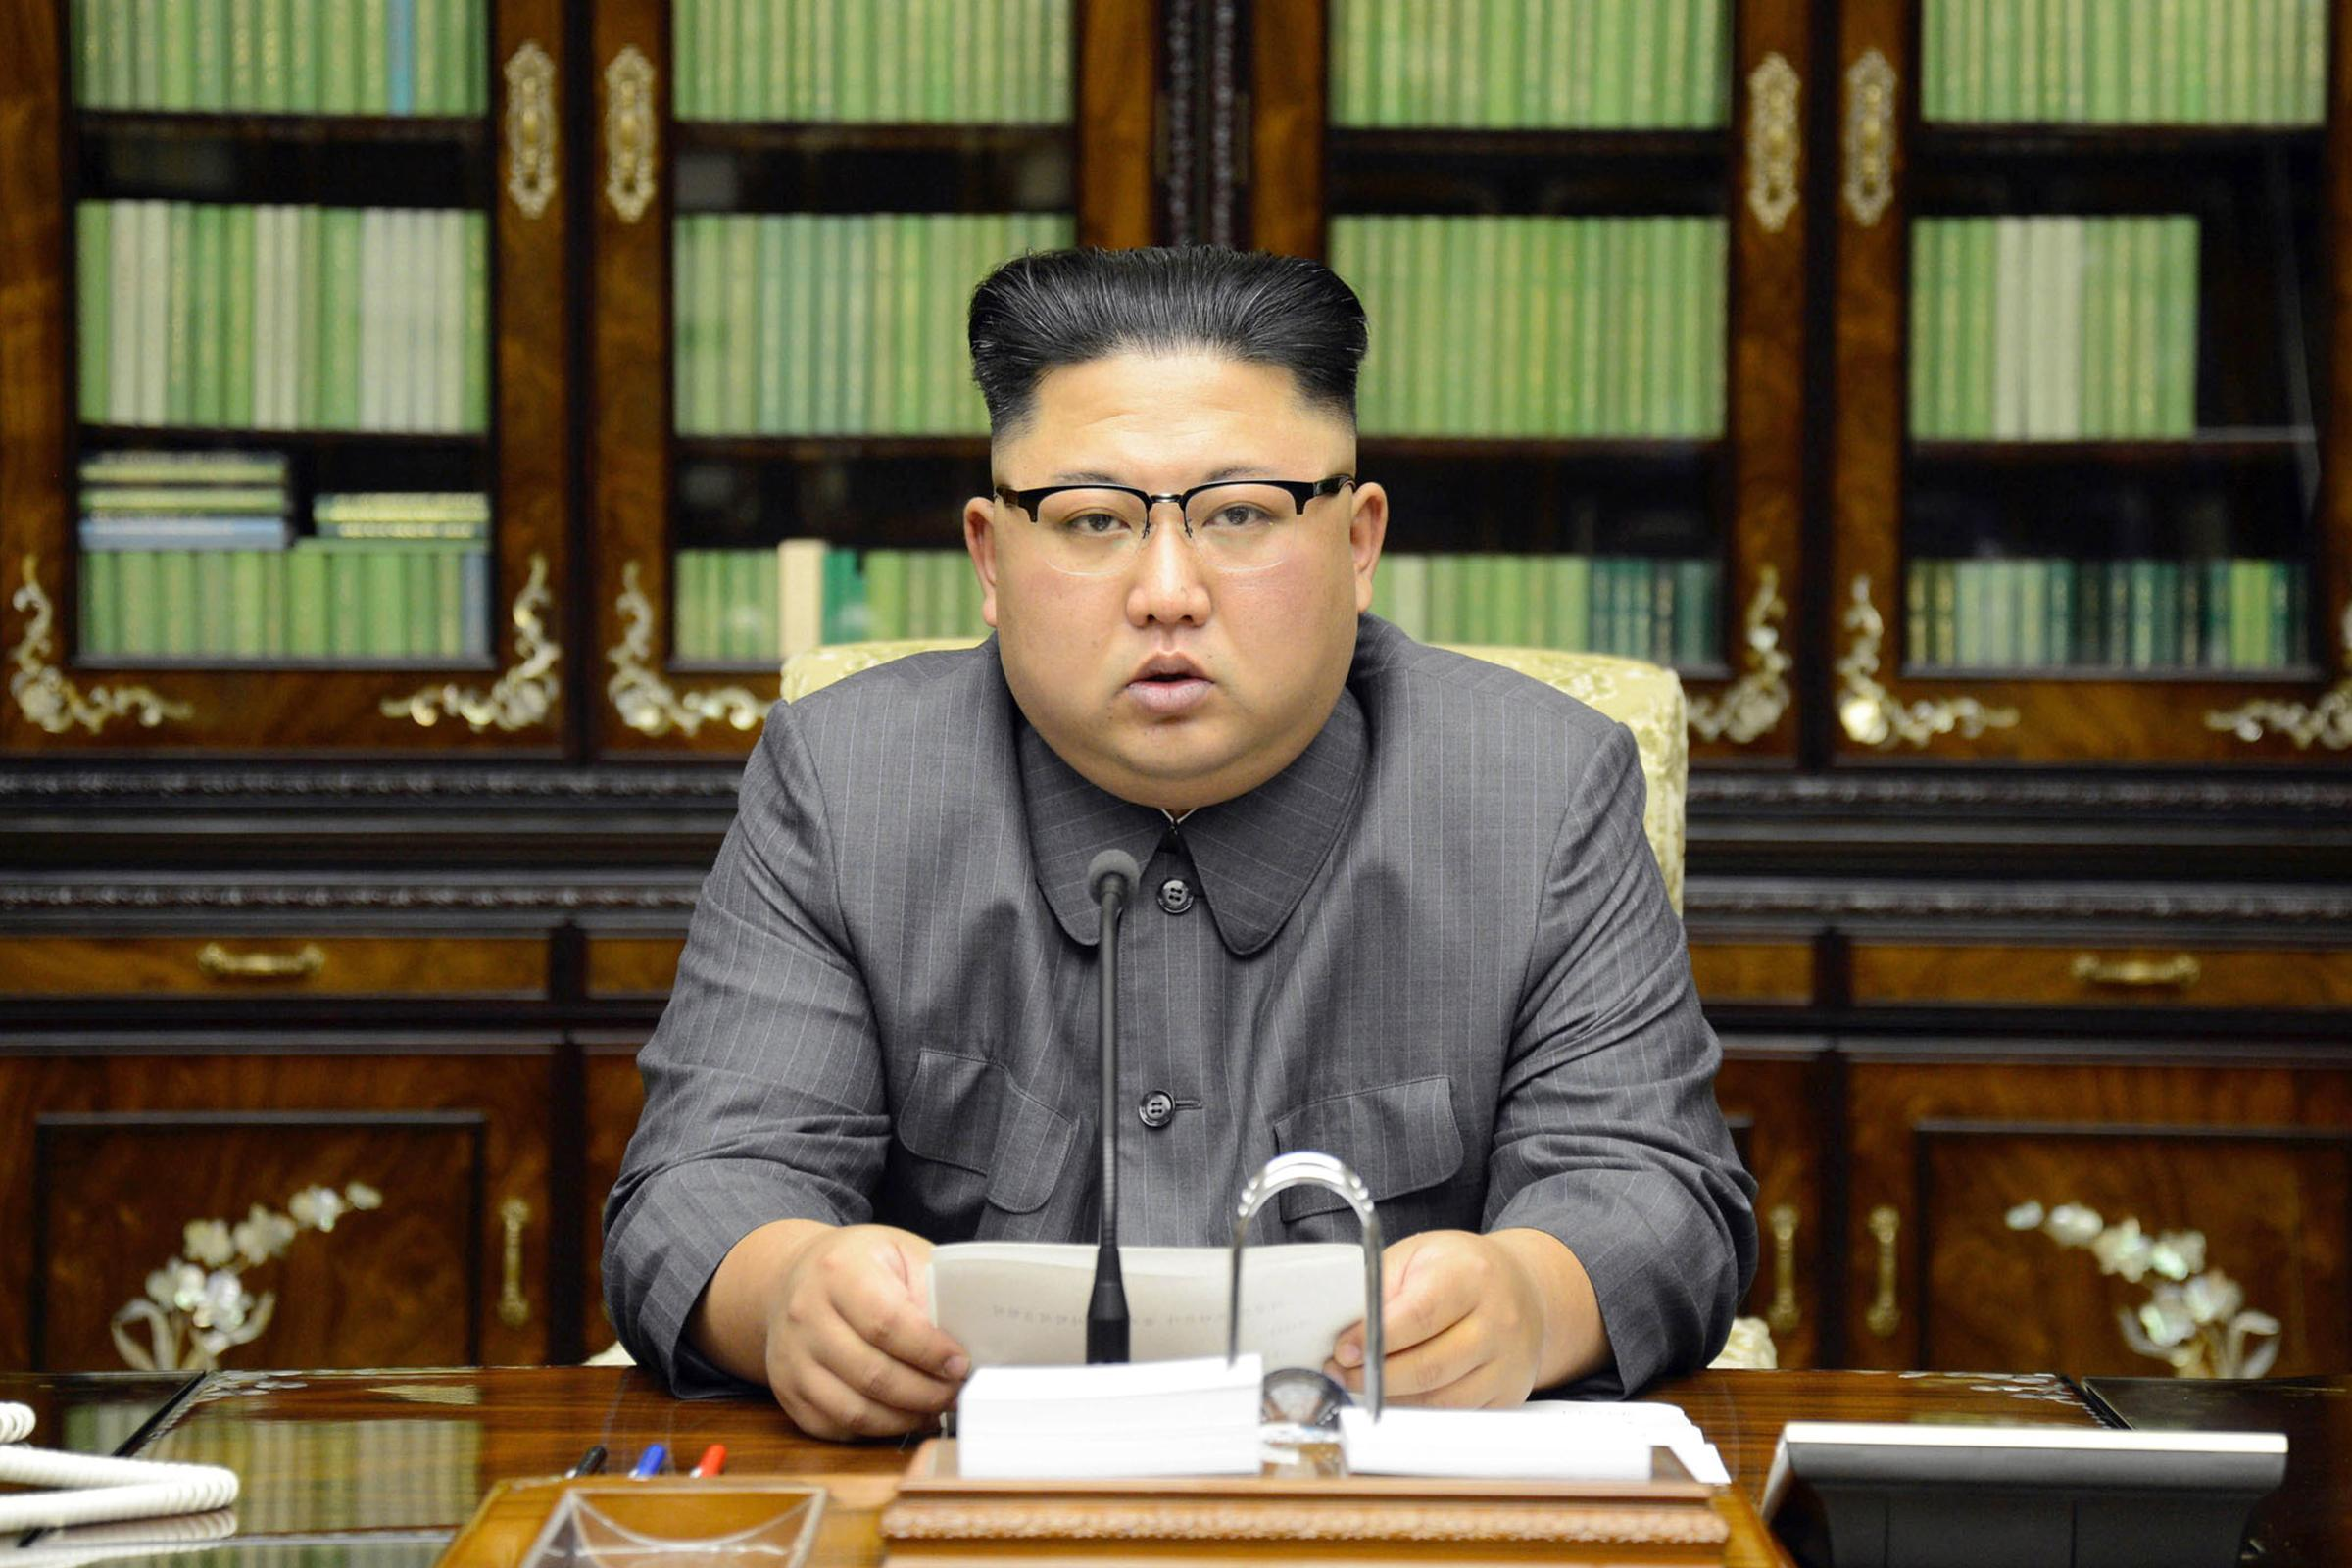 In this Thursday, Sept. 21, 2017, photo distributed on Friday, Sept. 22, 2017, by the North Korean government, North Korean leader Kim Jong Un delivers a statement in response to U.S. President Donald Trump's speech to the United Nations, in Pyongyang, North Korea. (Korean Central News Agency/Korea News Service via AP)